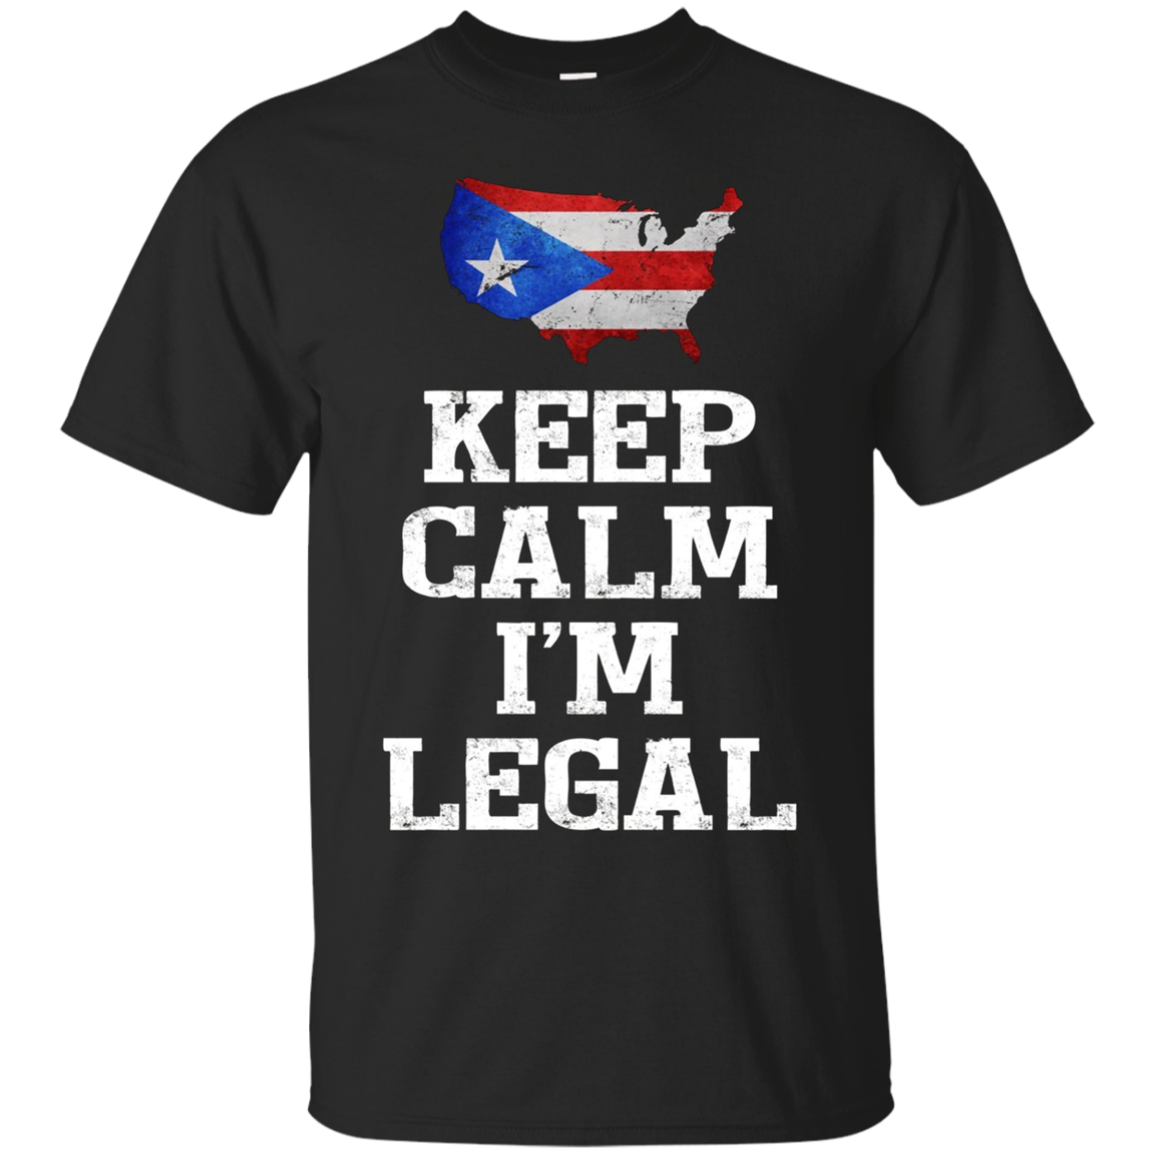 Keep Calm I'm Legal ~ Funny t-shirt Puerto Rico Flag